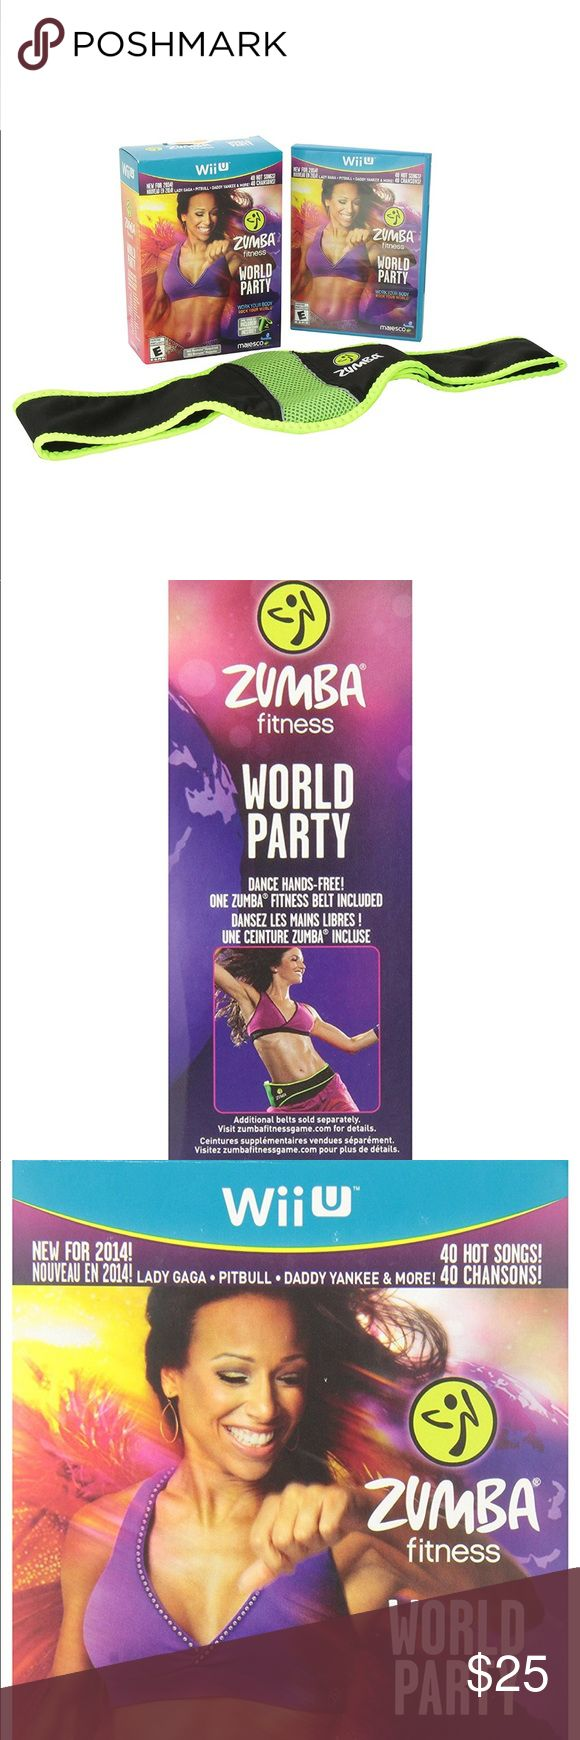 Zumba World Party DVD and Belt Included NWT Get fit to 40+ new routines and songs including chart-topping hits from Lady Gaga, Daddy Yankee and Pitbull, fresh Zumba originals and eclectic tracks from regional musicians. This DVD set is for WiiU. Make an offer today! :) Zumba Fitness Other